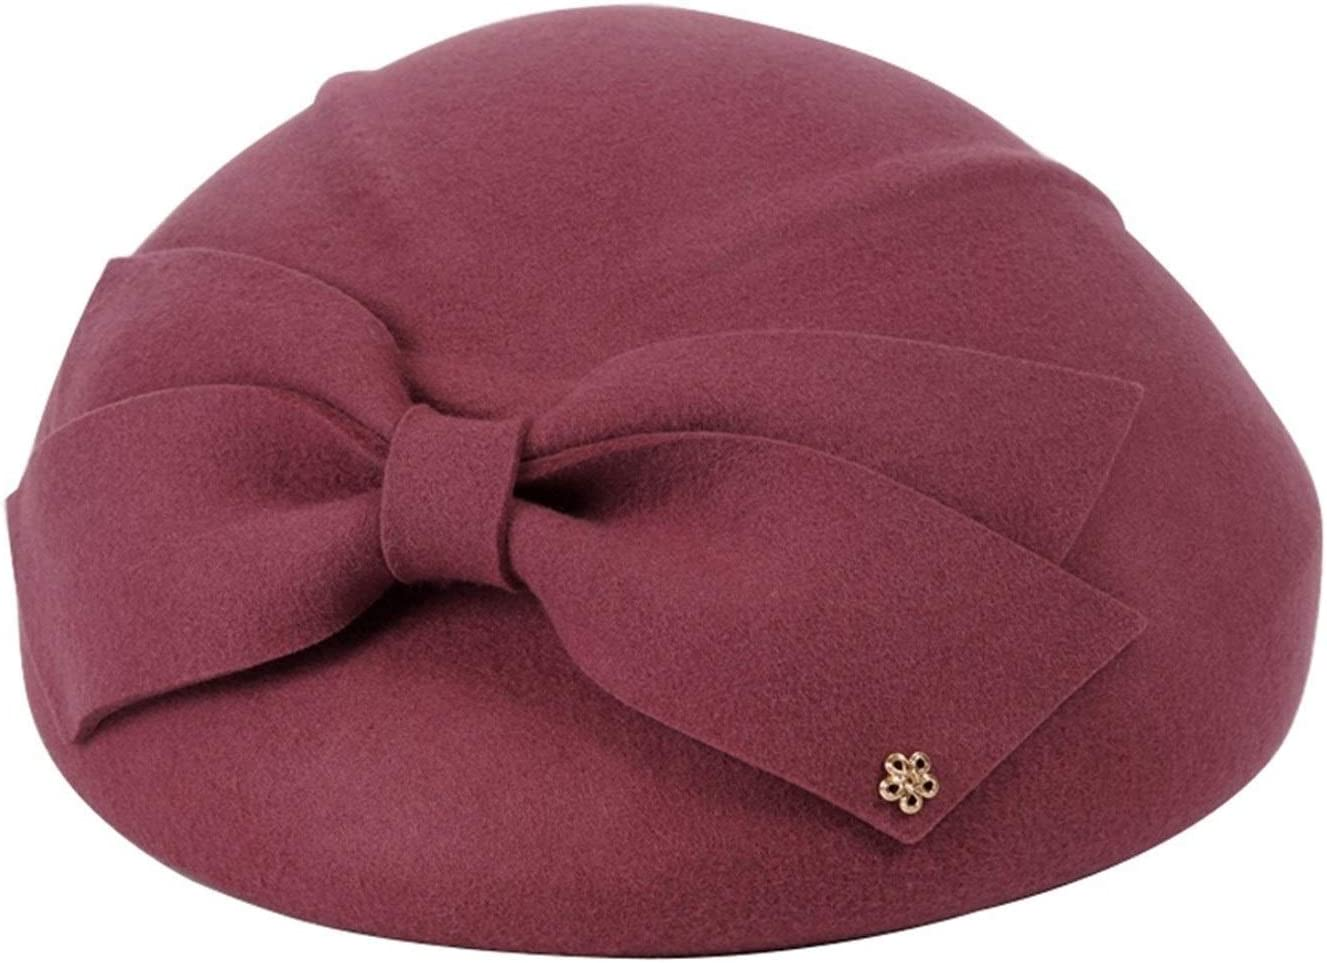 YAOJIA Winter hat Woman Wool Beret   Solid Color Bow Small Hat Hats to Keep Warm Spring and Winter Travel Beanie Cap (Color : Pink)